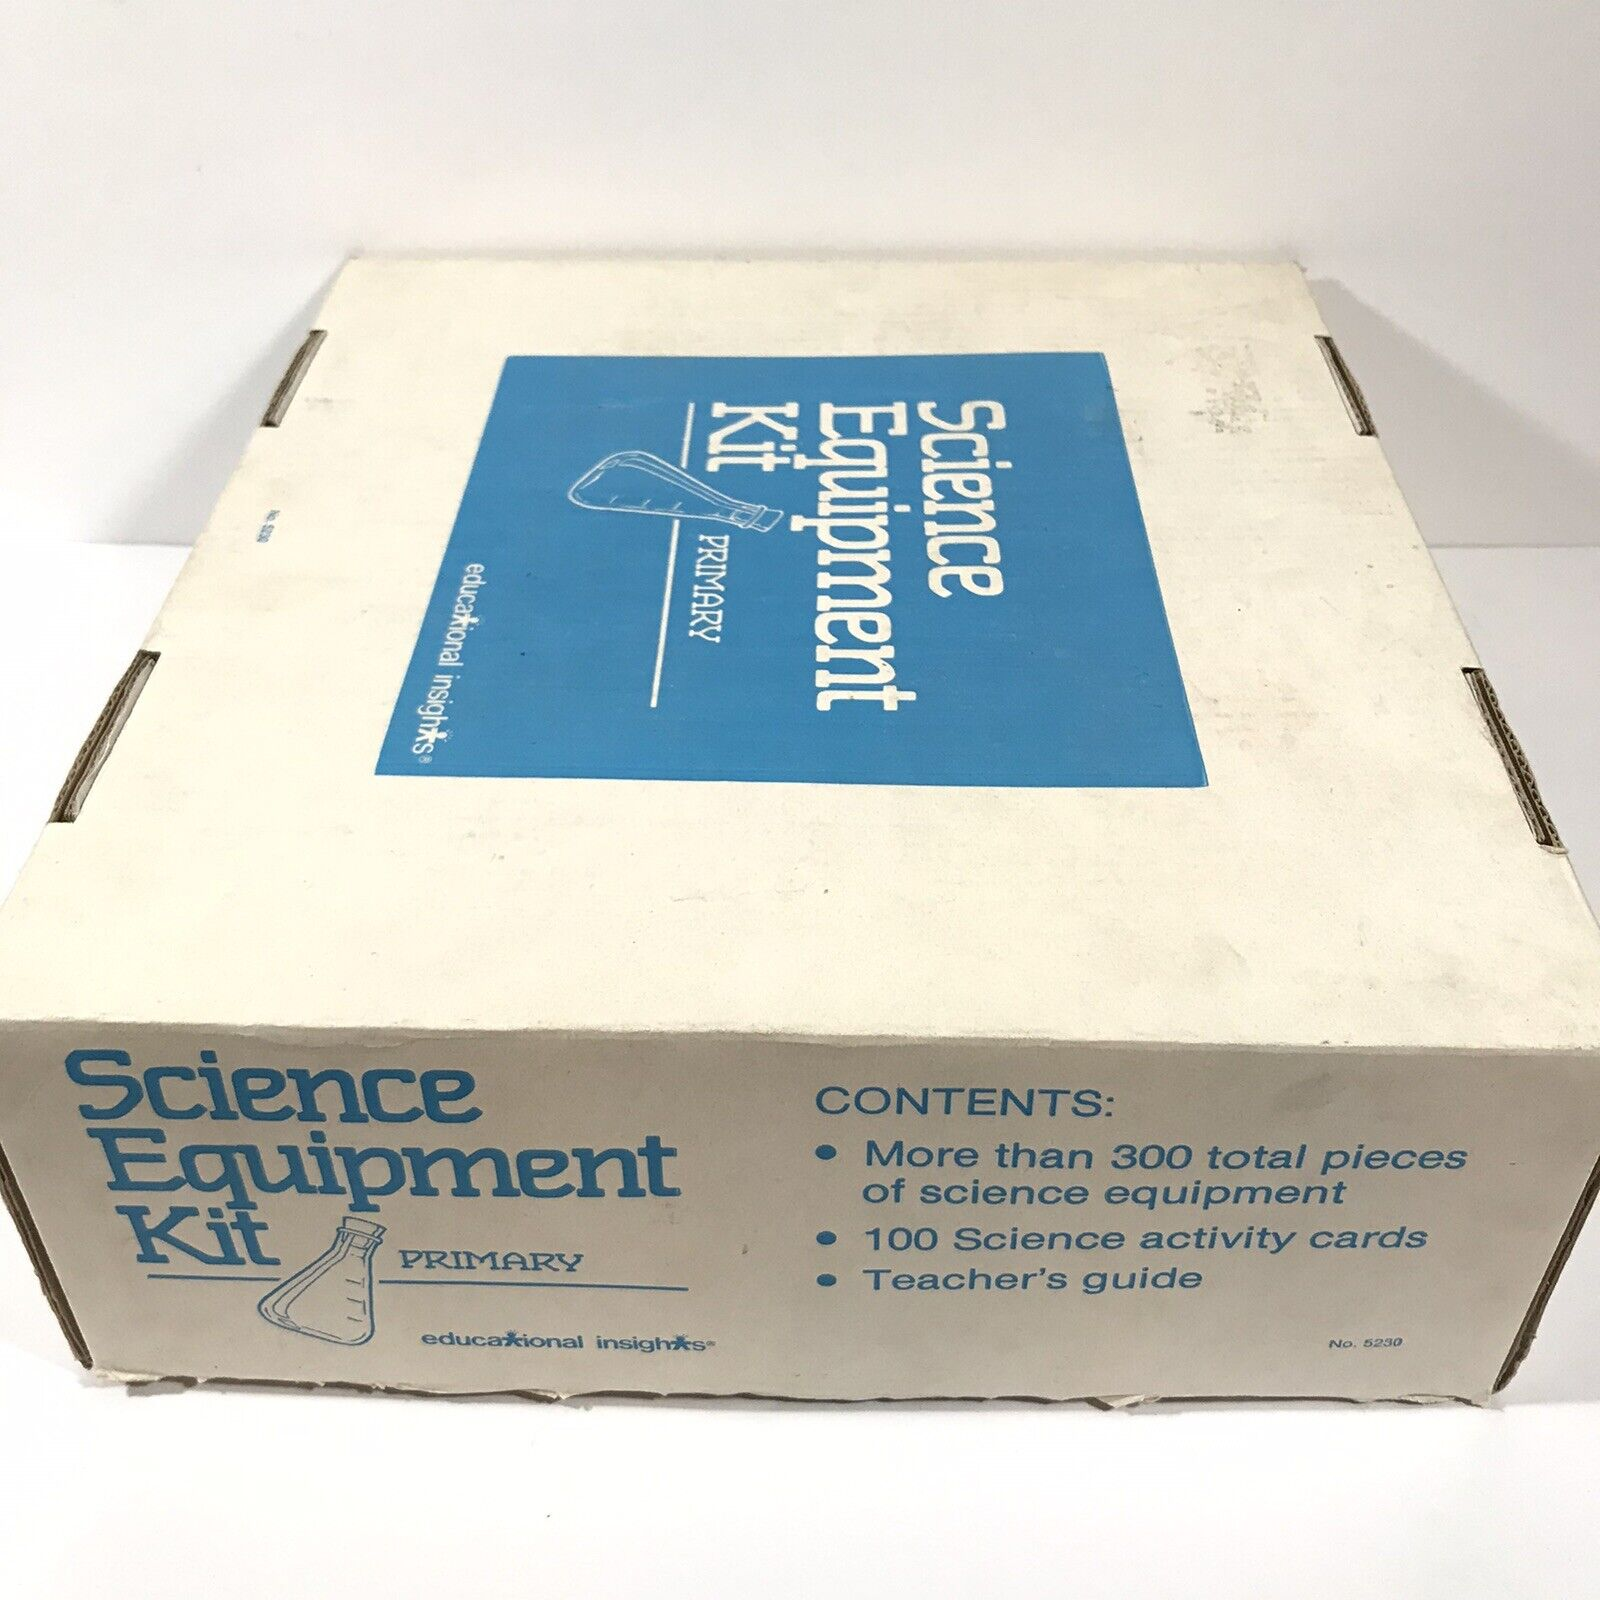 Vintage Primary Science EquipSiet Kit Educational Insights No. 5230 As-Is